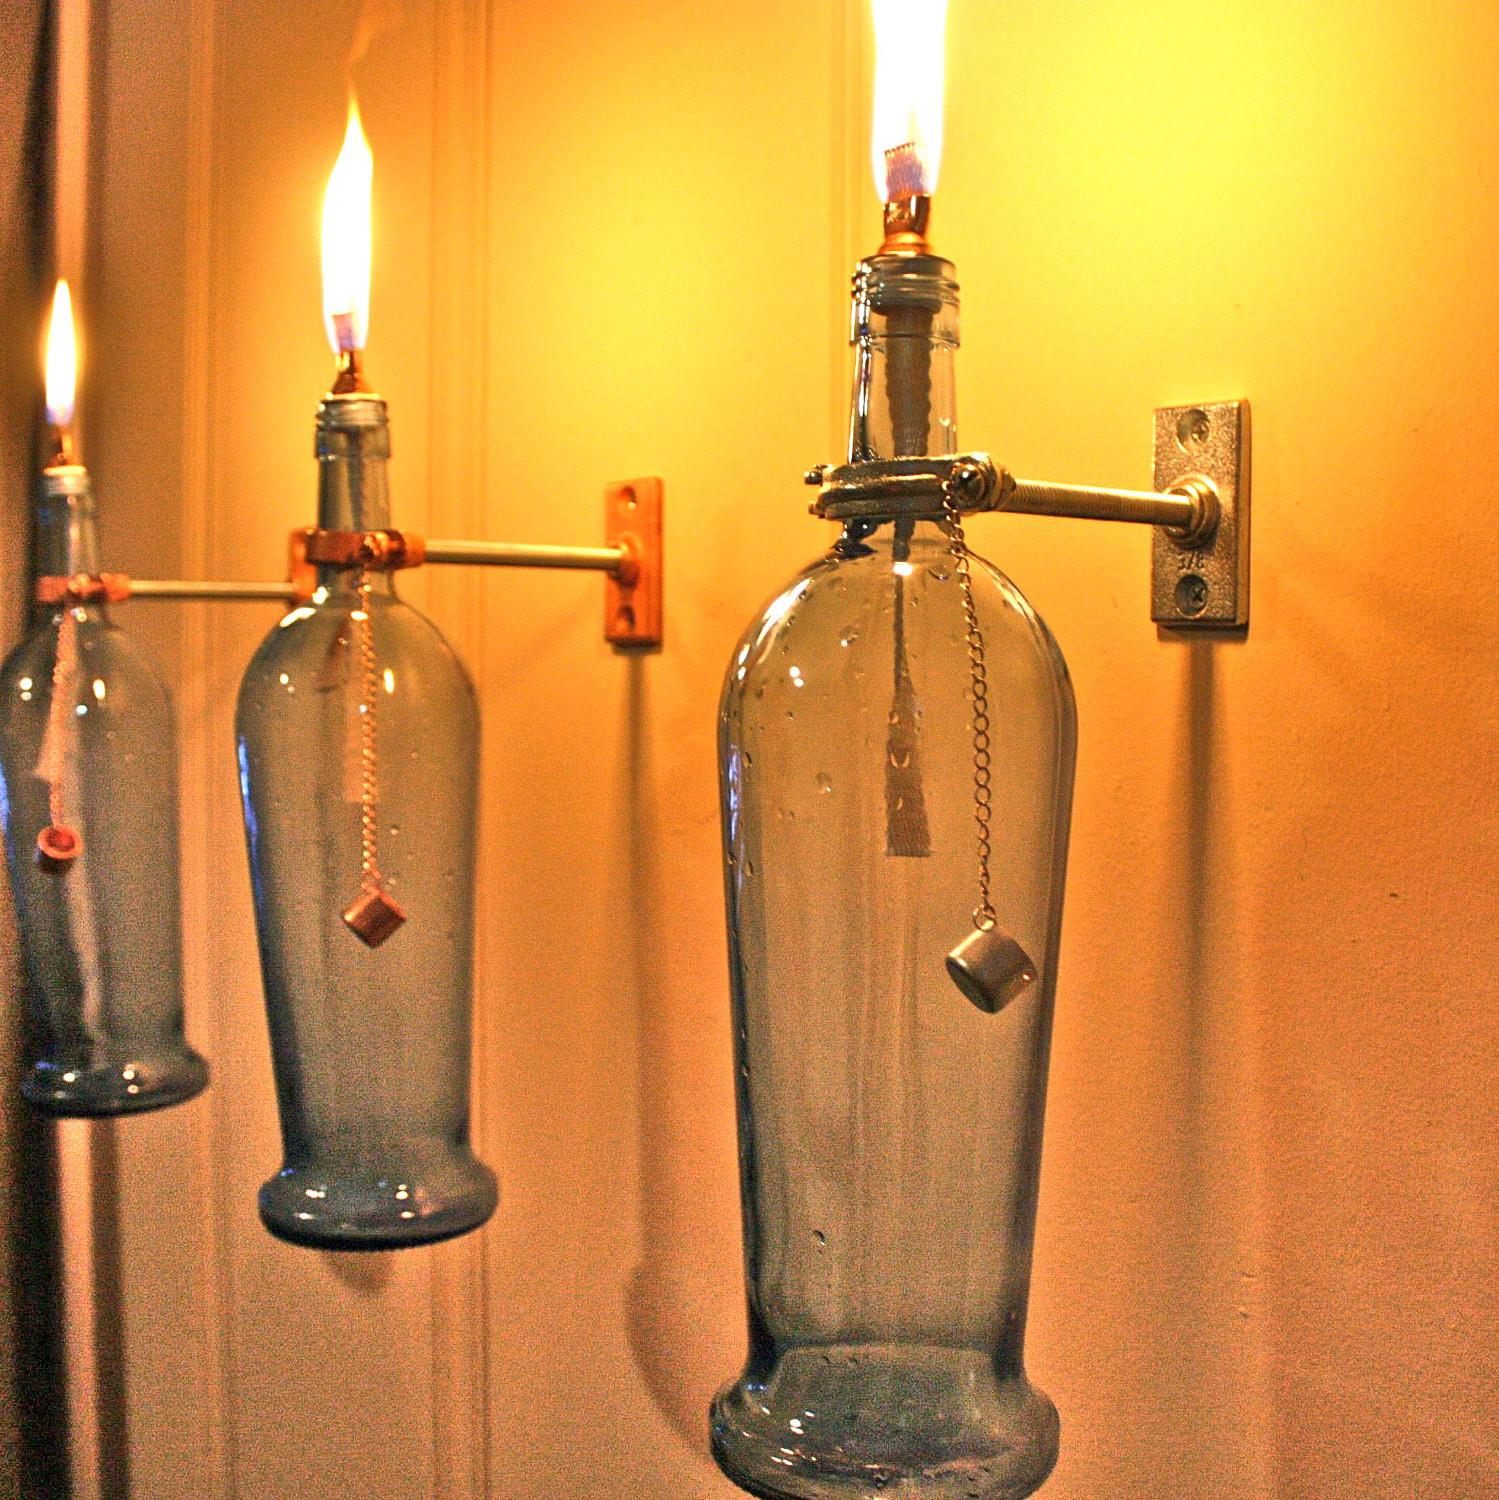 Hardware Only Wine Bottle Oil Lamp Kits Indoor